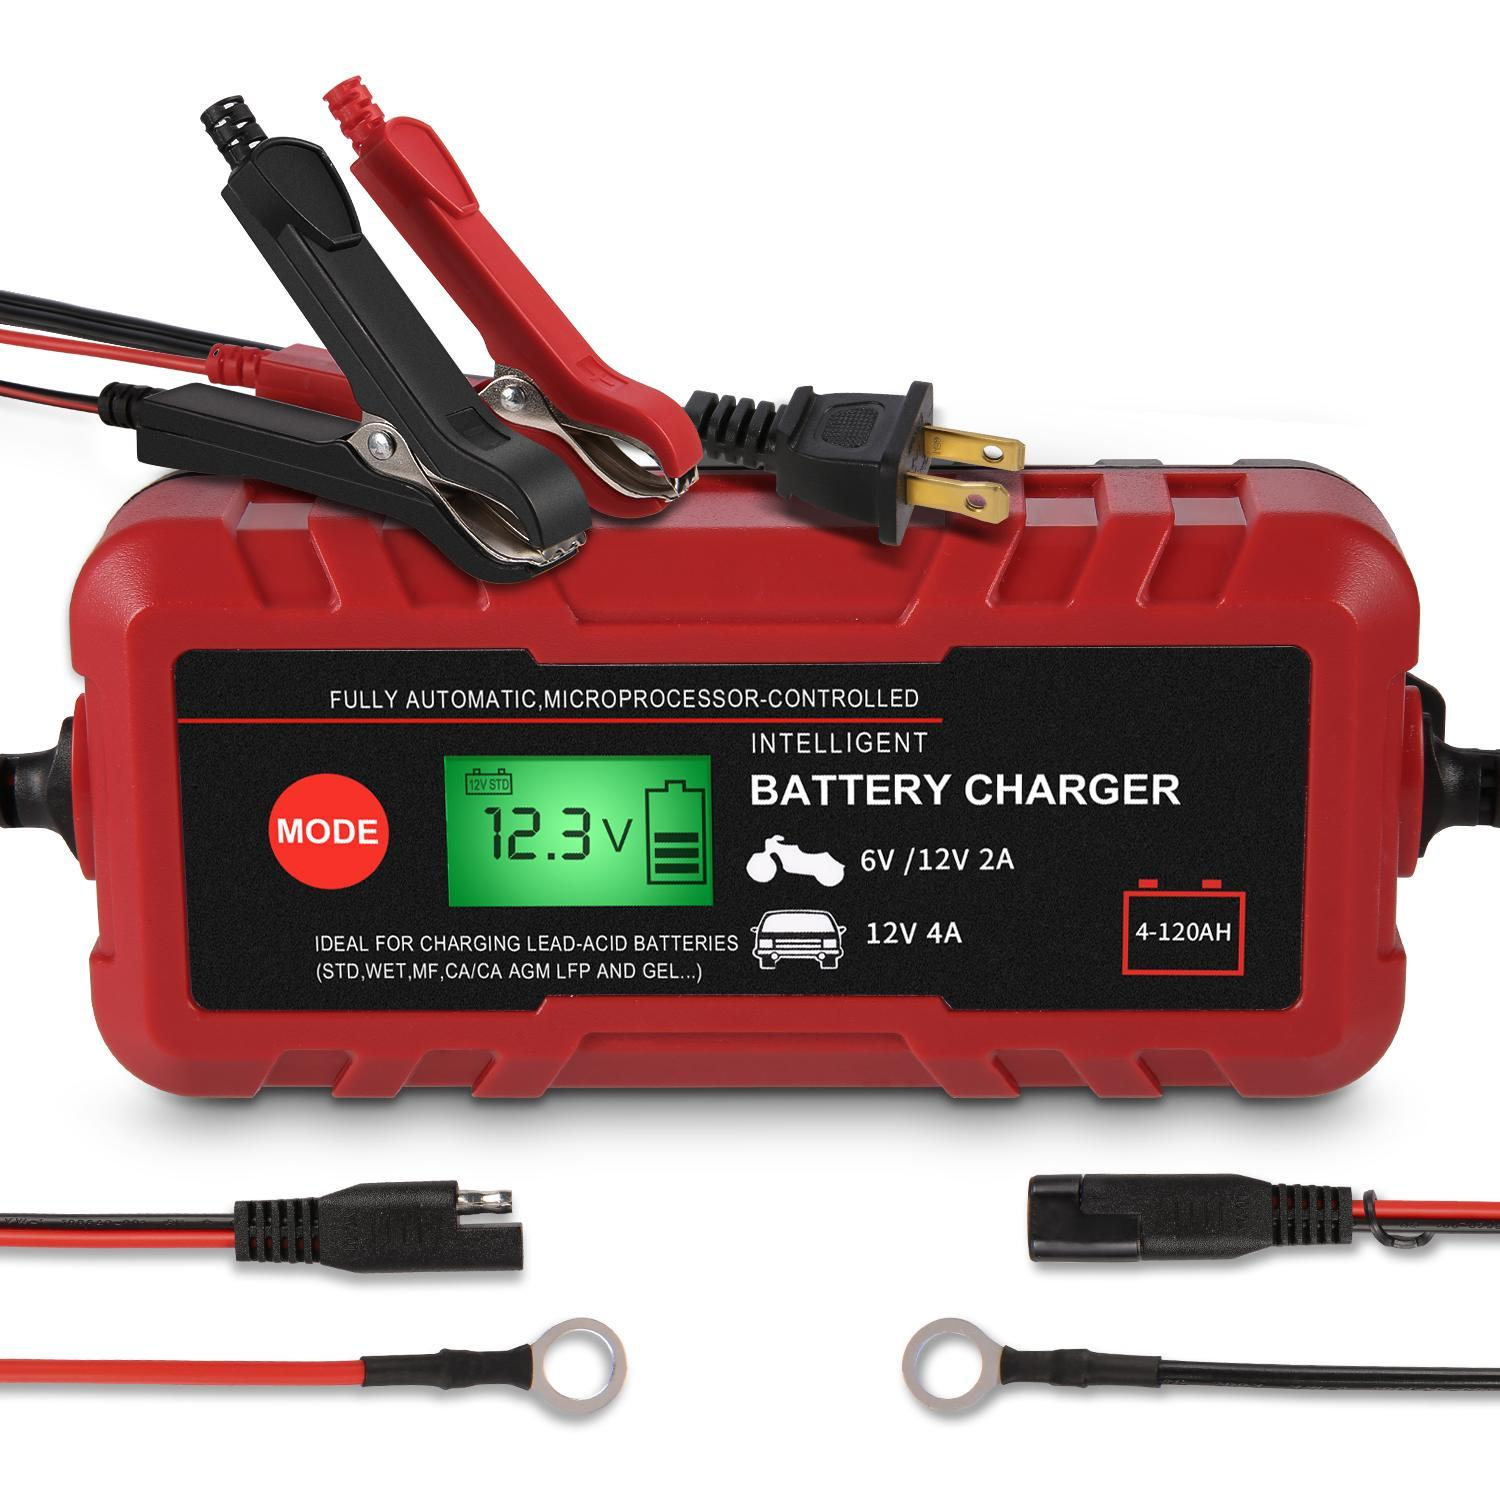 12V 2A Smart Battery Charger Portable Battery Maintainer US Auto Motorcycle Car Battery Charger Power Display Intelligent Protection